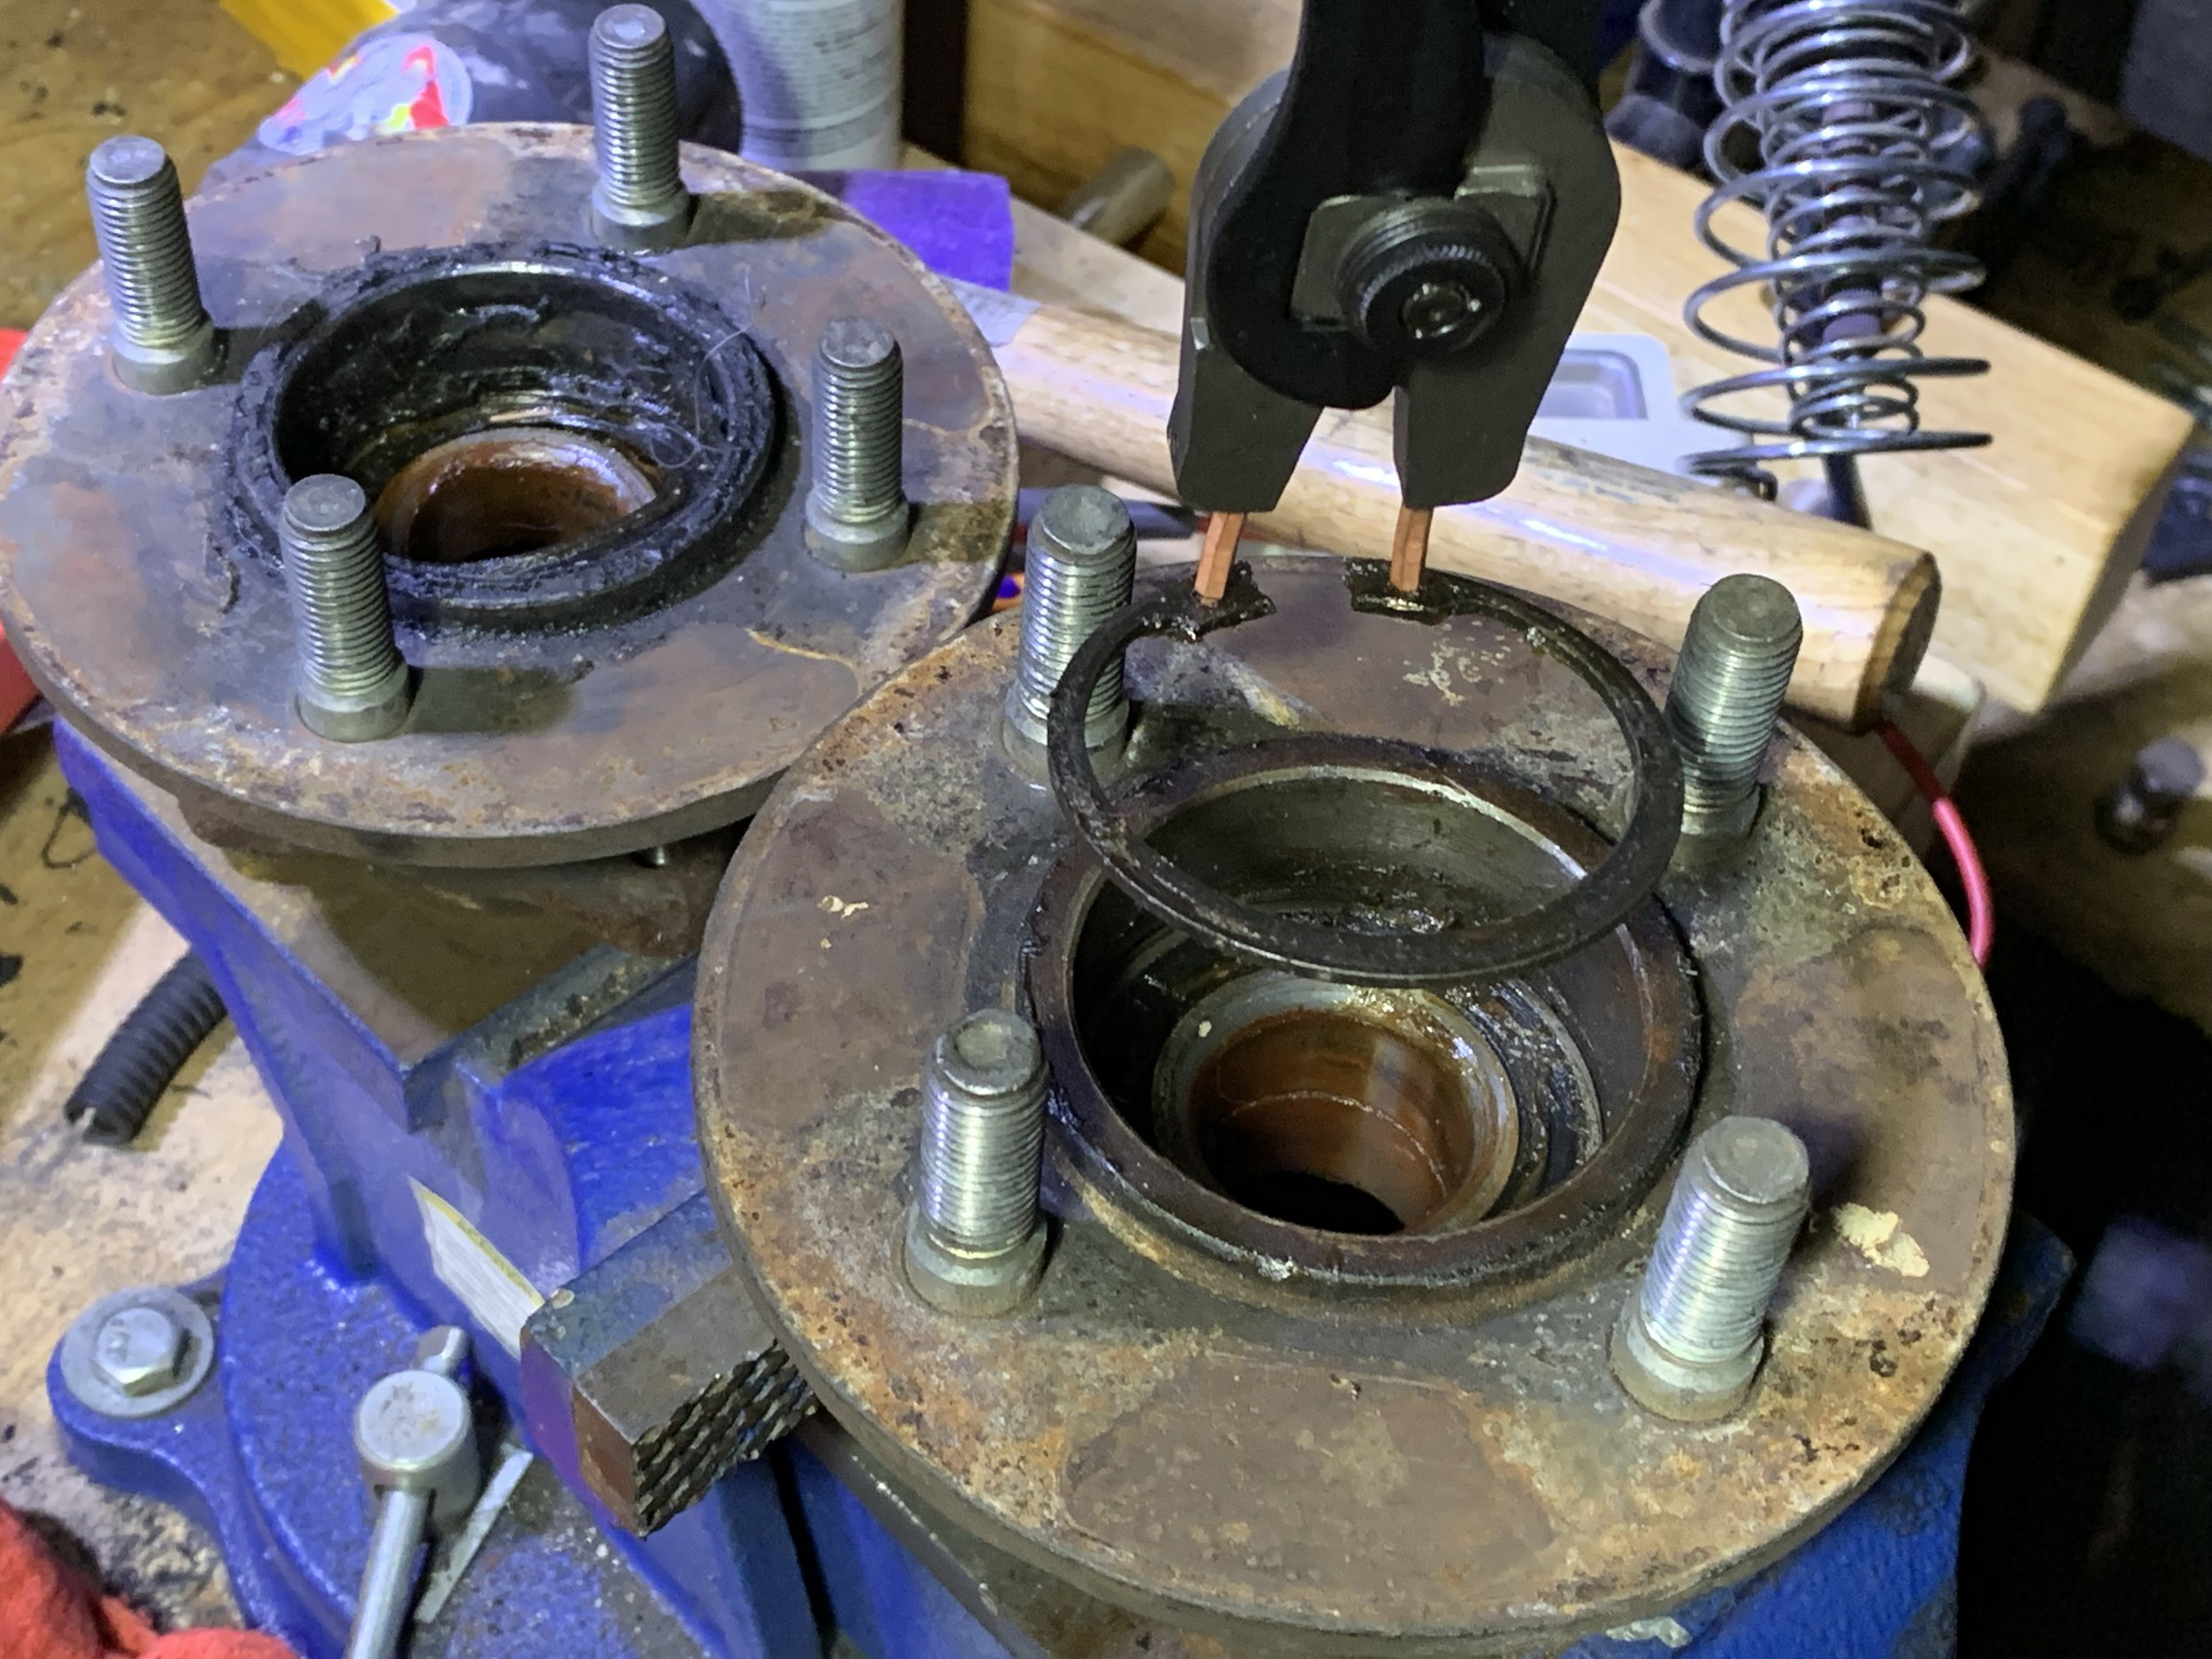 The retaining ring after removing it from the hub.